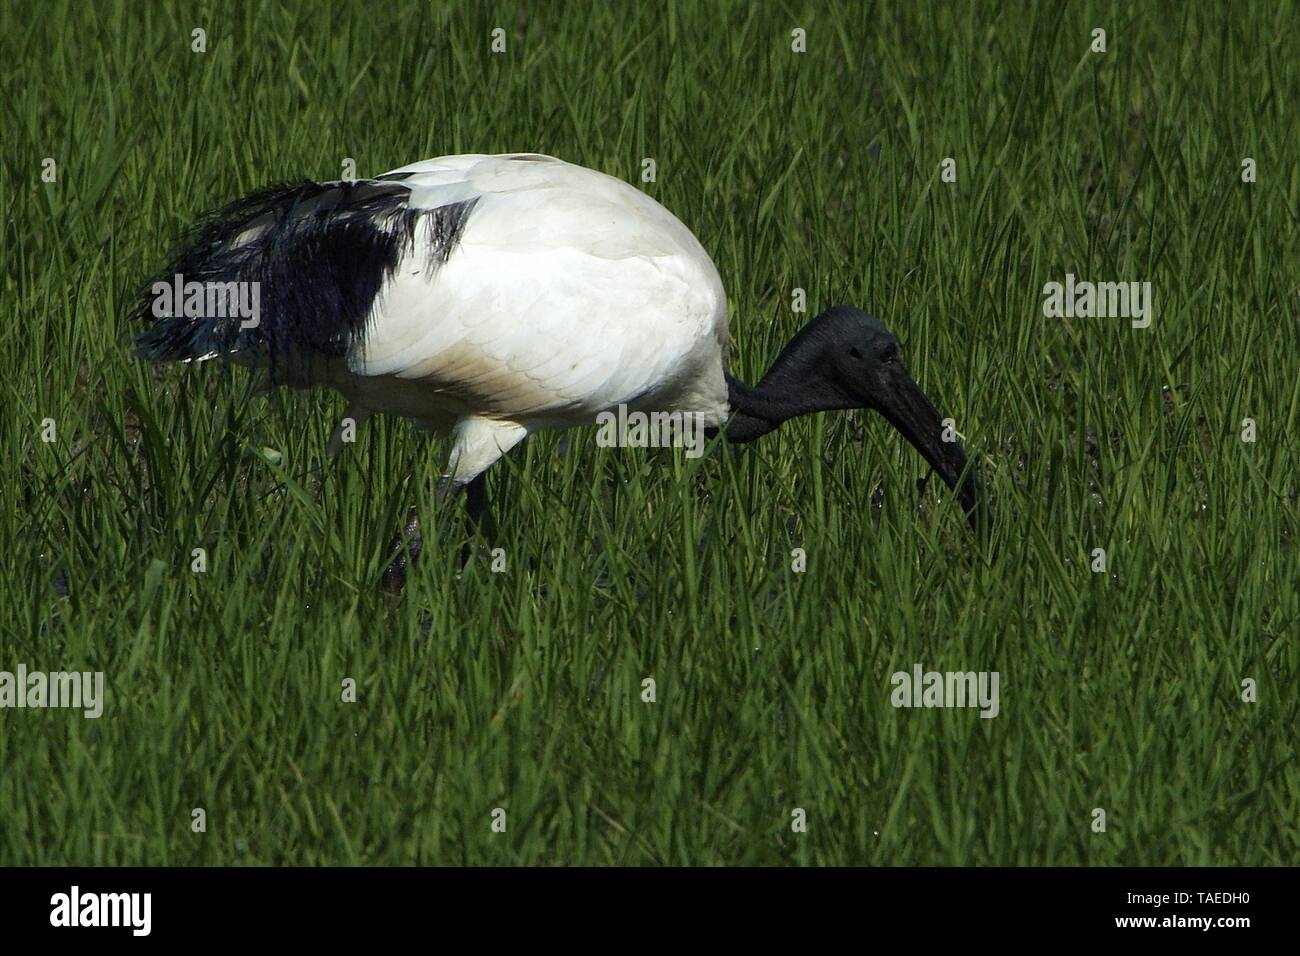 Sacred African ibis (Latin name threskiornis aethiopicus) wading in a paddy field in spring in Vercelli in the Po Valley in Italy - Stock Image